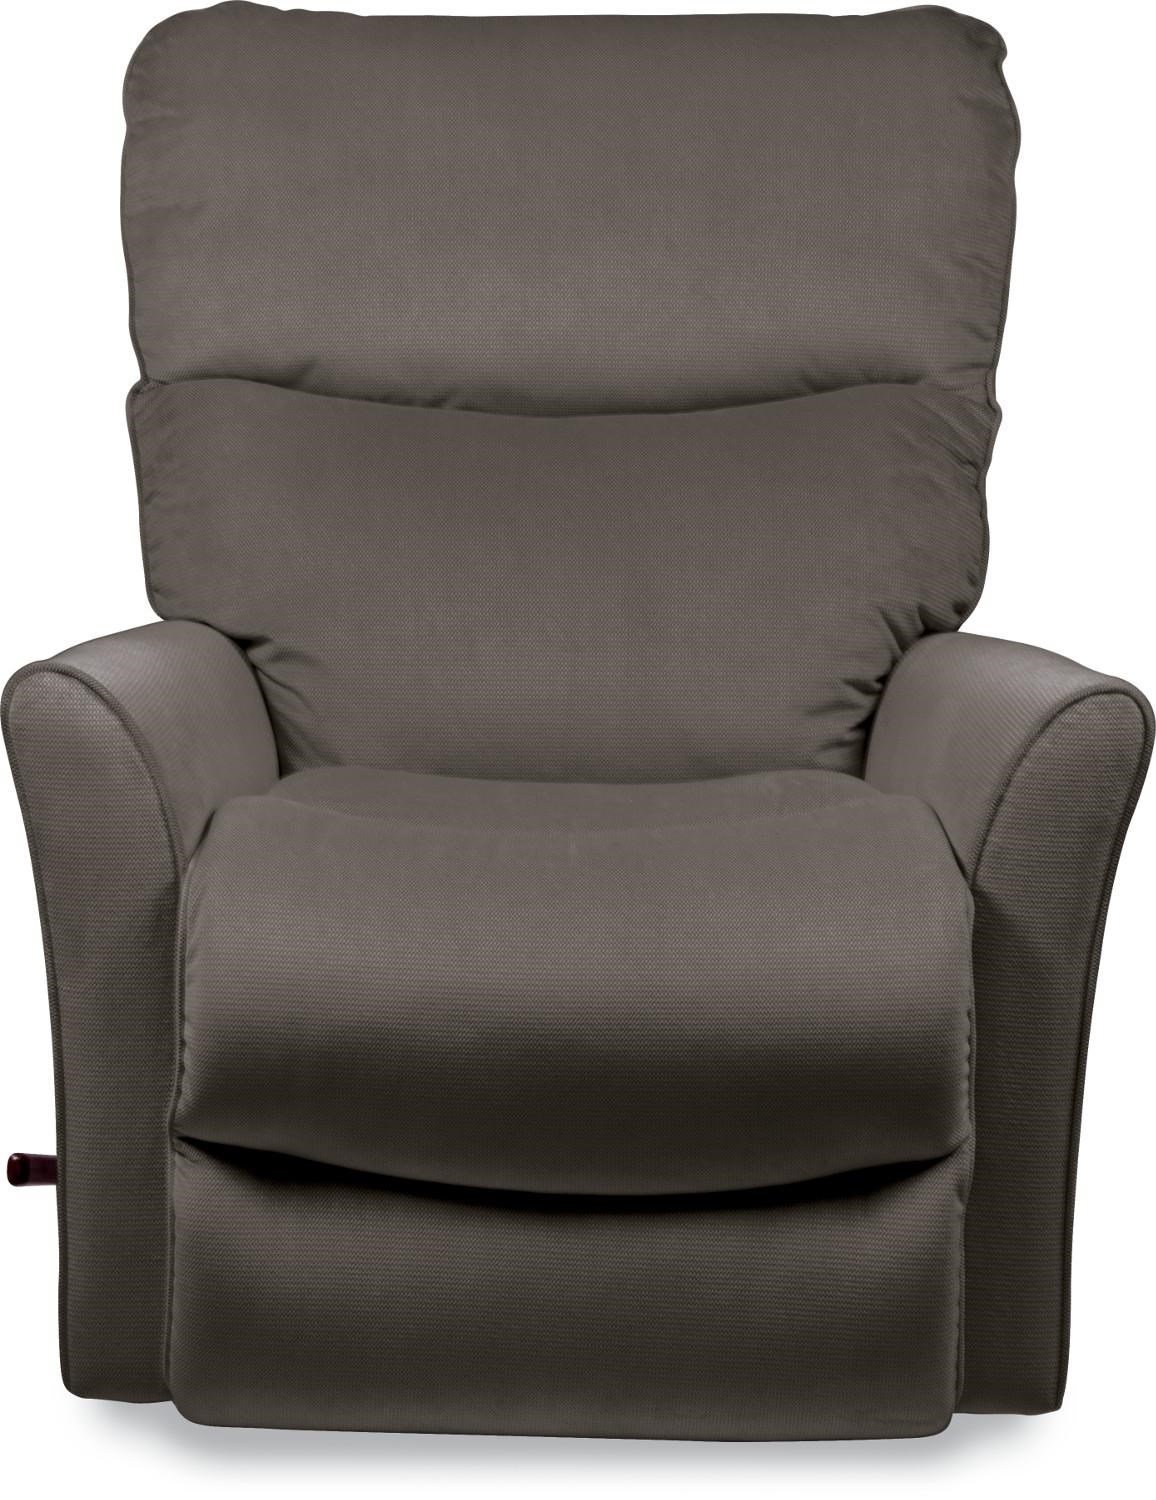 La Z Boy Fabric Rowan Small Scale RECLINA ROCKER® Recliner With Flared Arms    Great American Home Store   Three Way Recliners